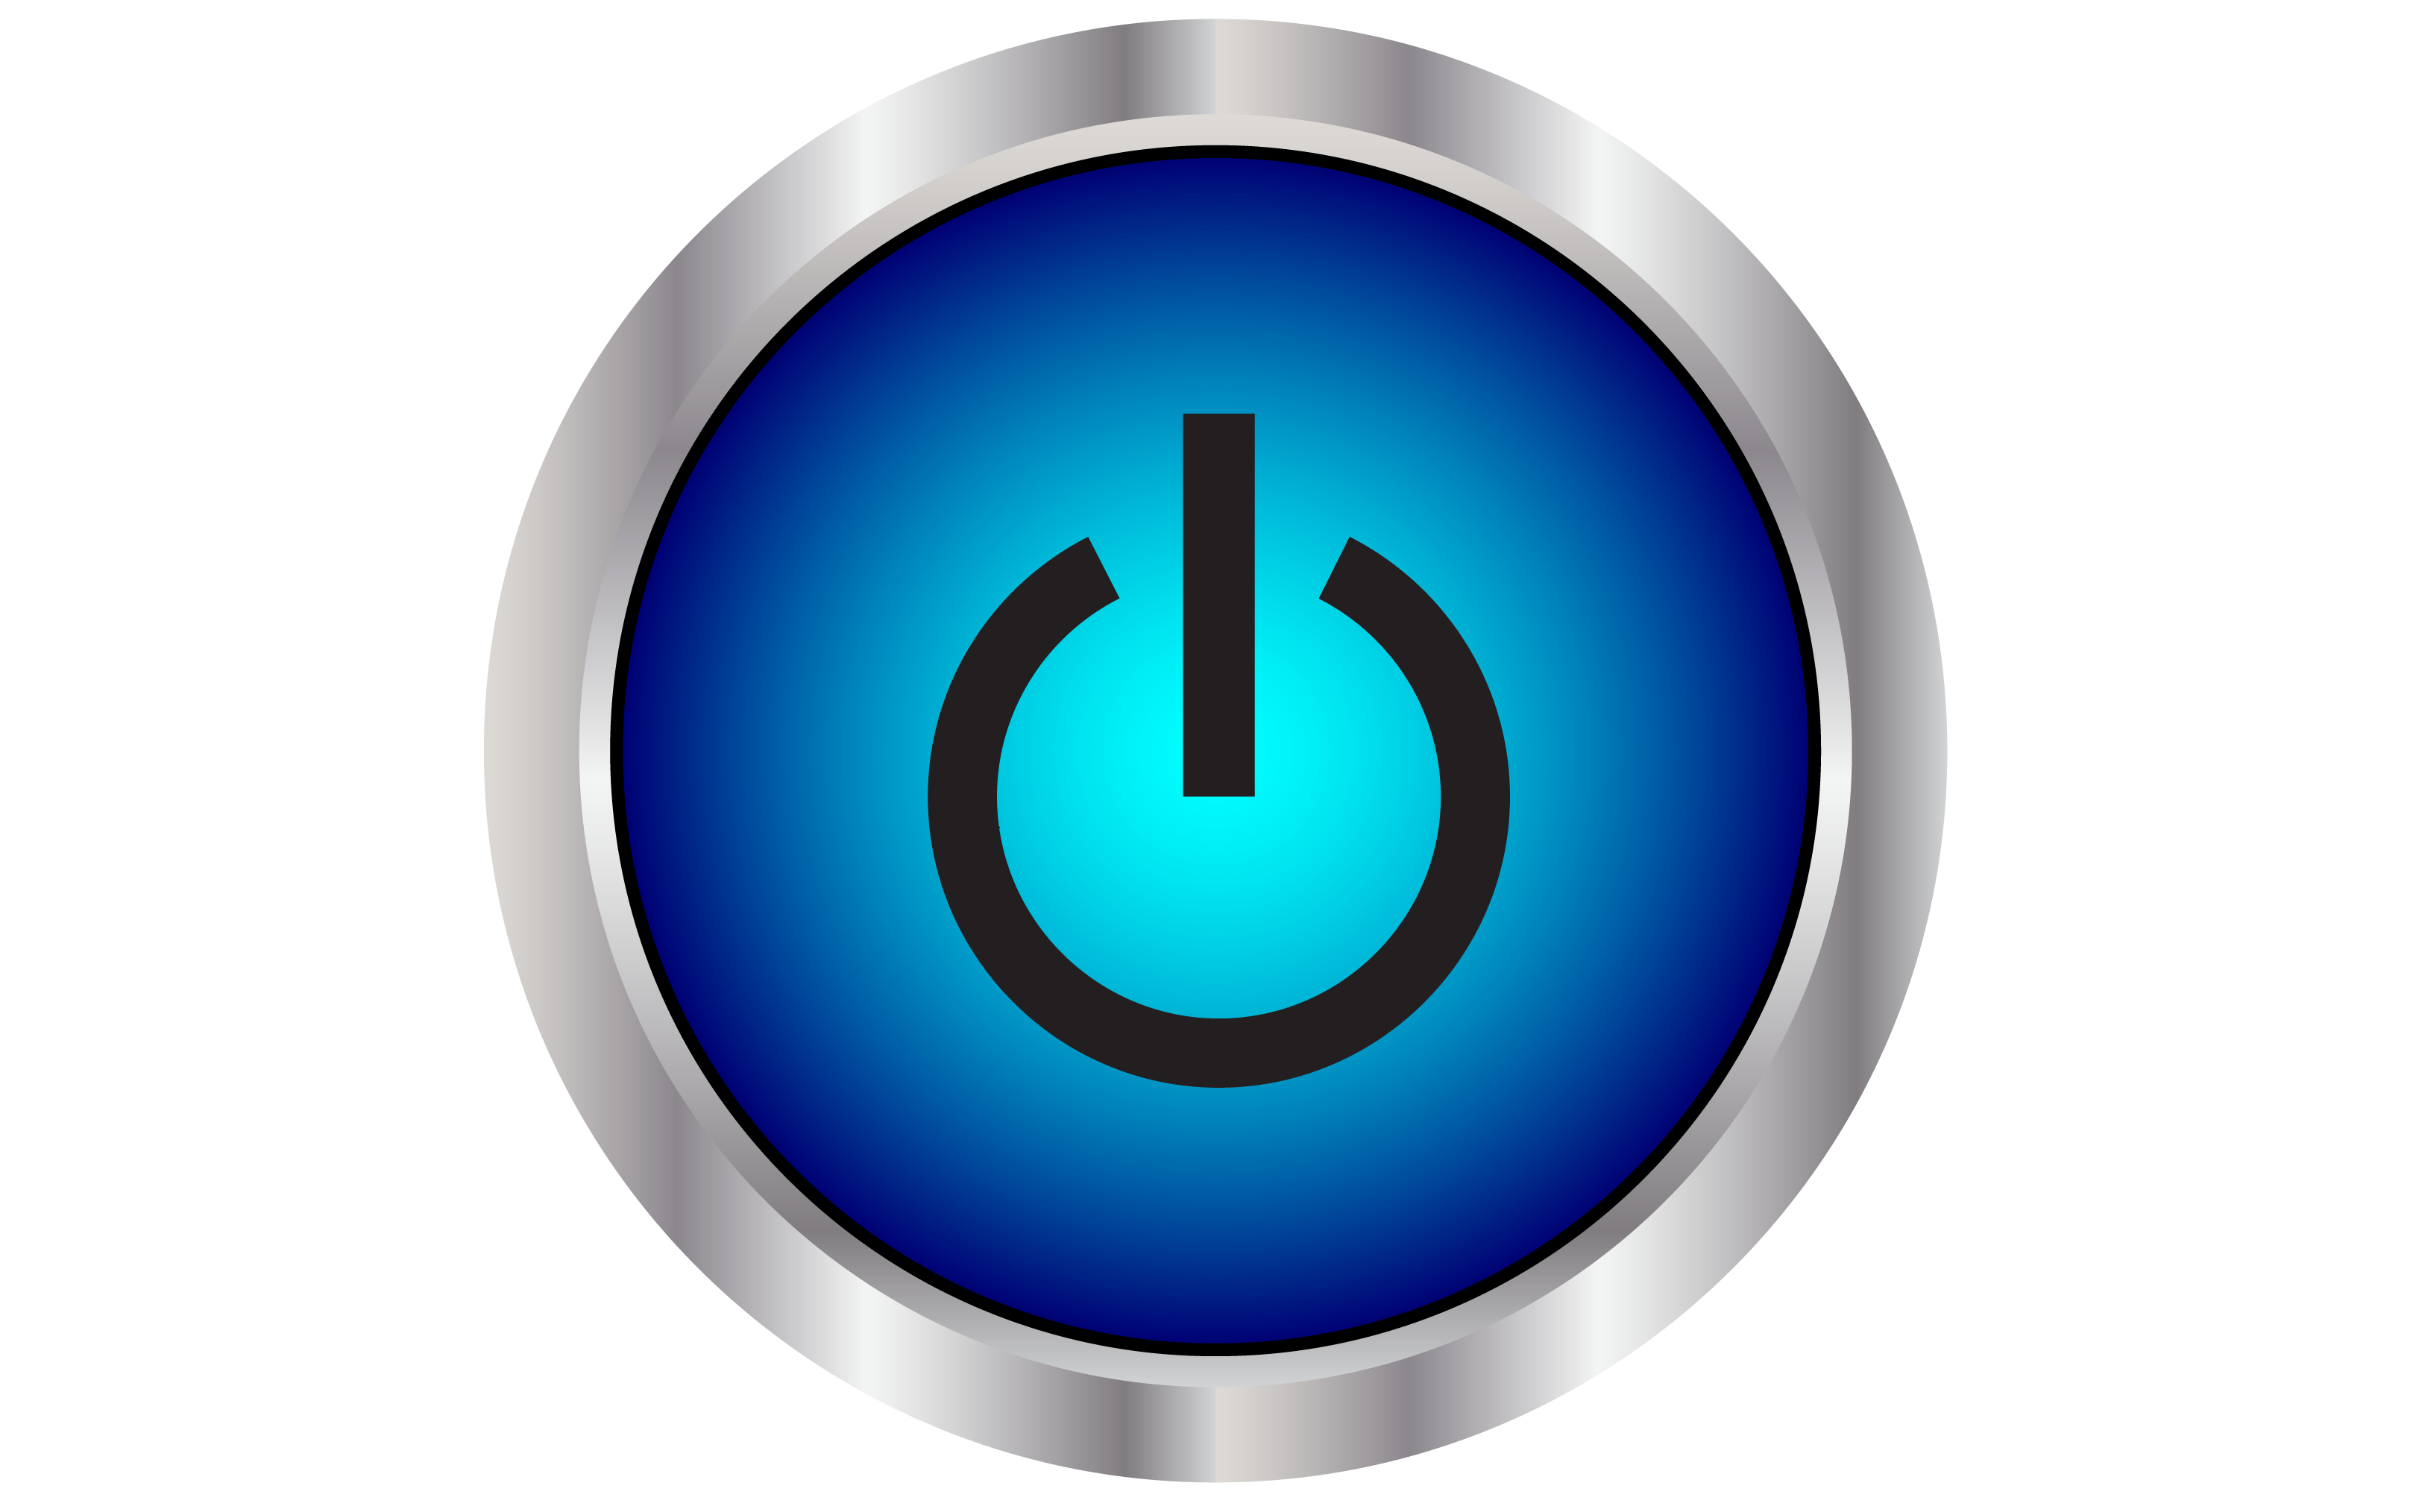 Power Button Full Hd - Power HD PNG